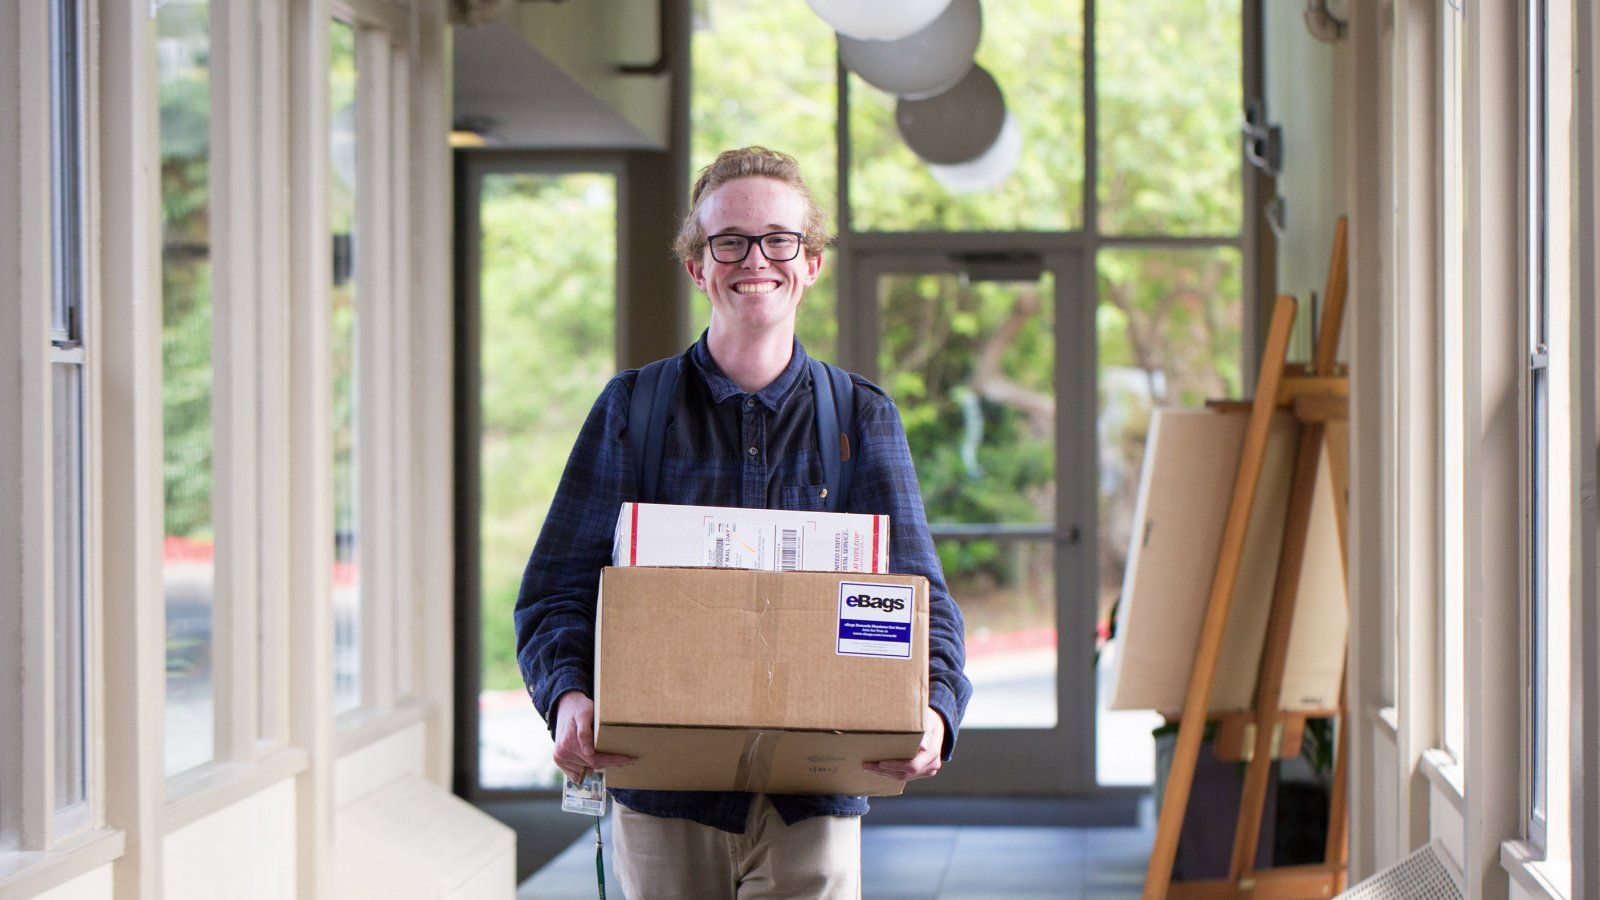 A student carries their mail in a residence hall